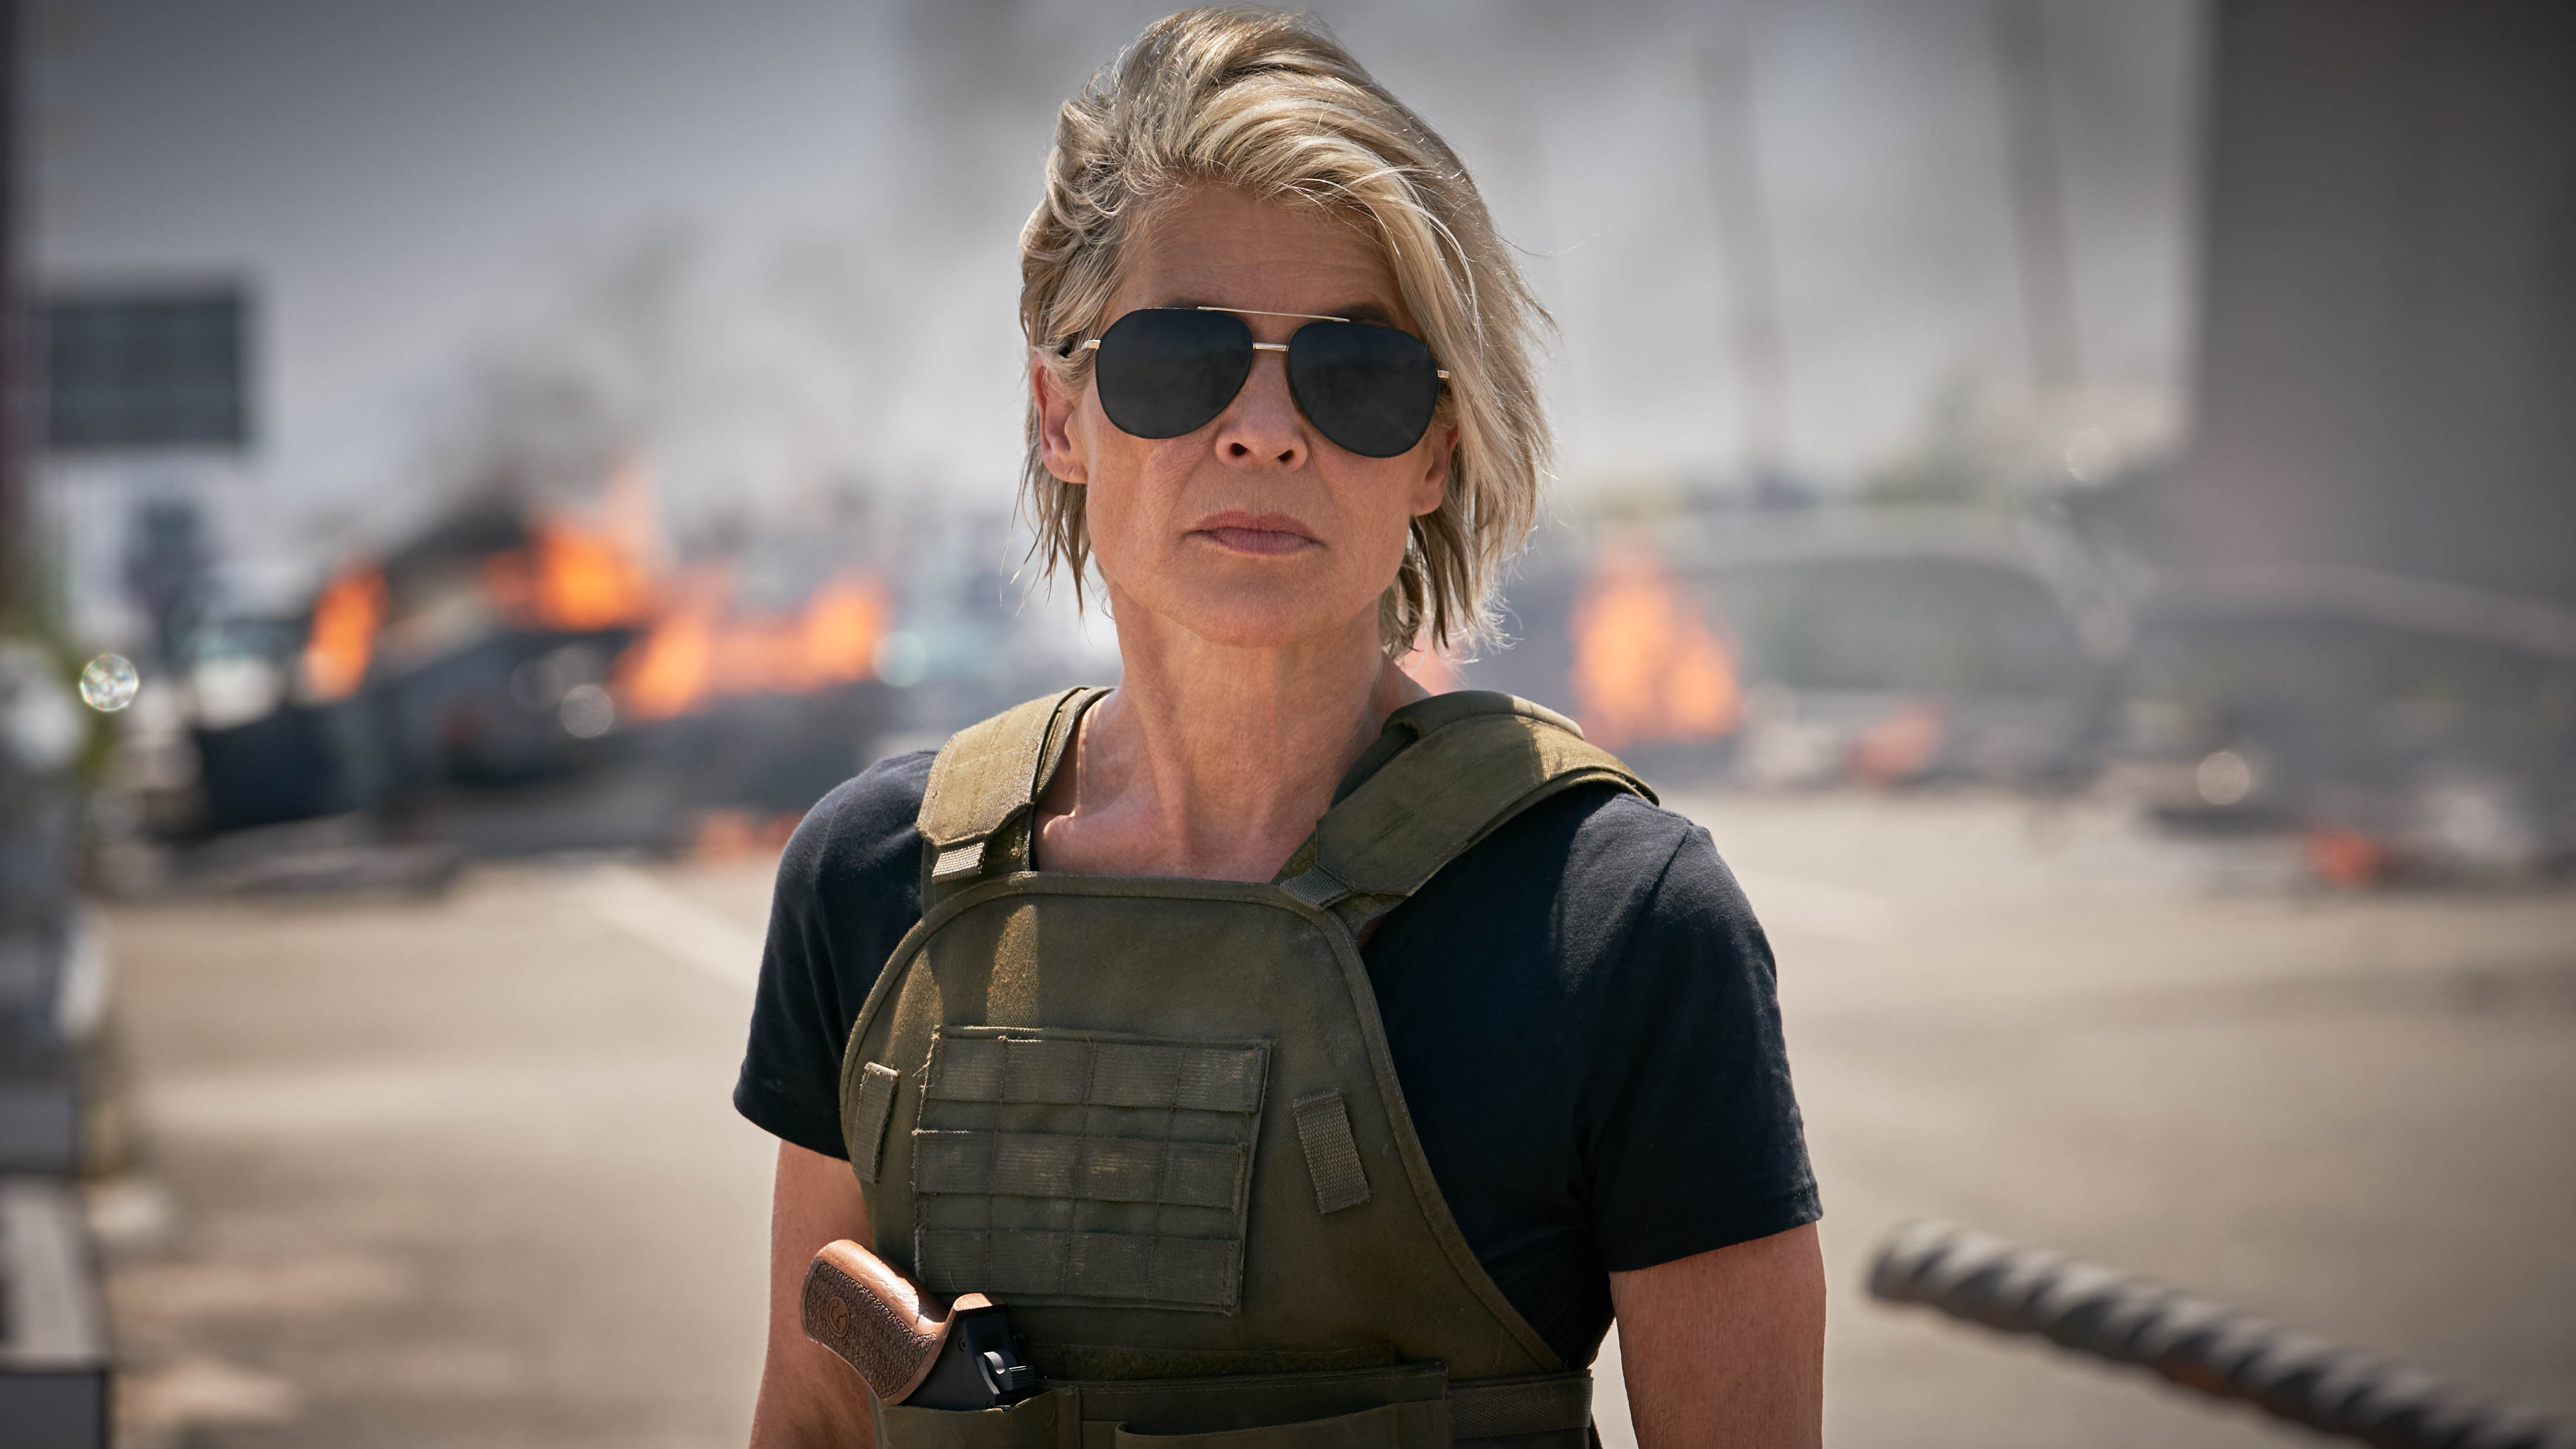 Linda Hamilton, wearing a combat vest and aviator classes, looking non-plussed.